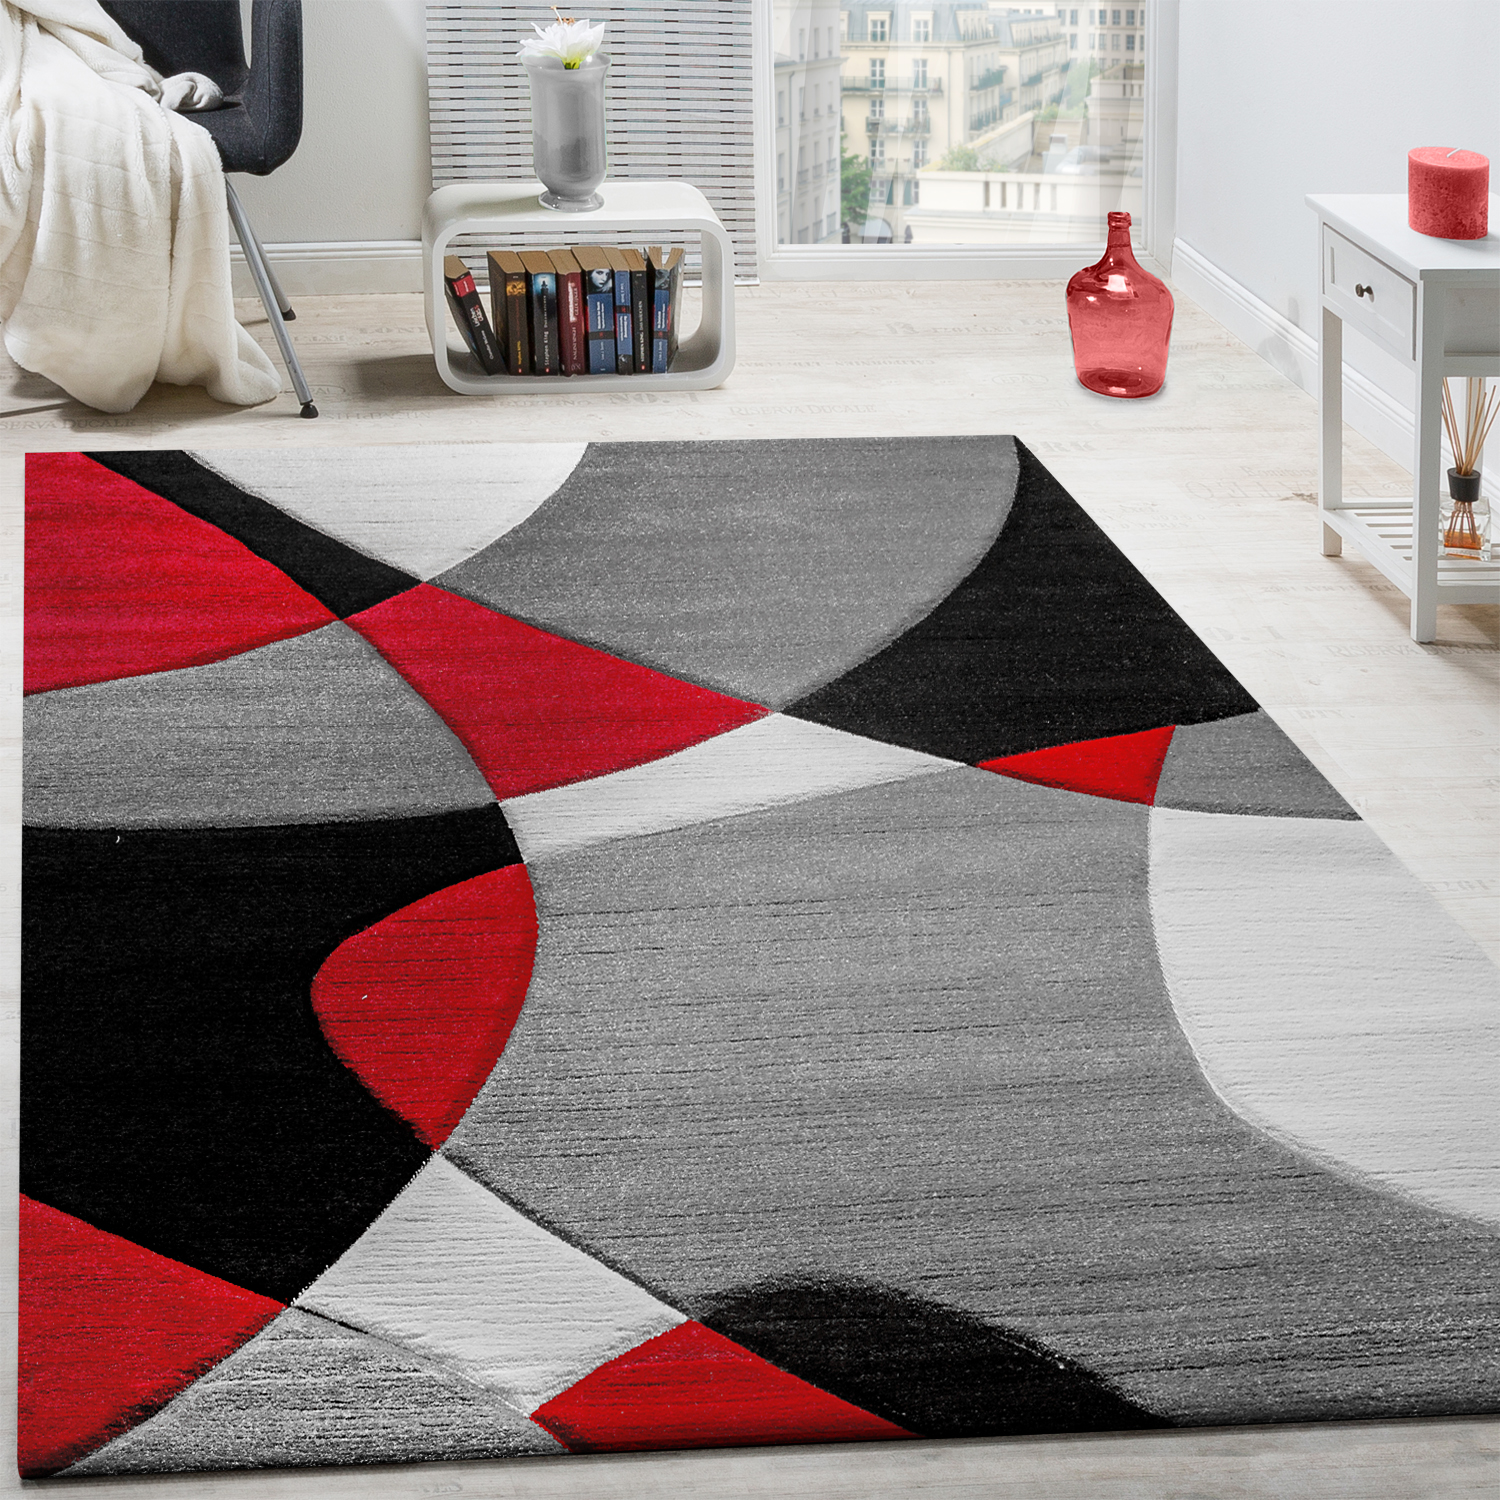 cr ateur tapis moderne g om trique motif d coupe des contours en rouge noir gris tapis tapis. Black Bedroom Furniture Sets. Home Design Ideas